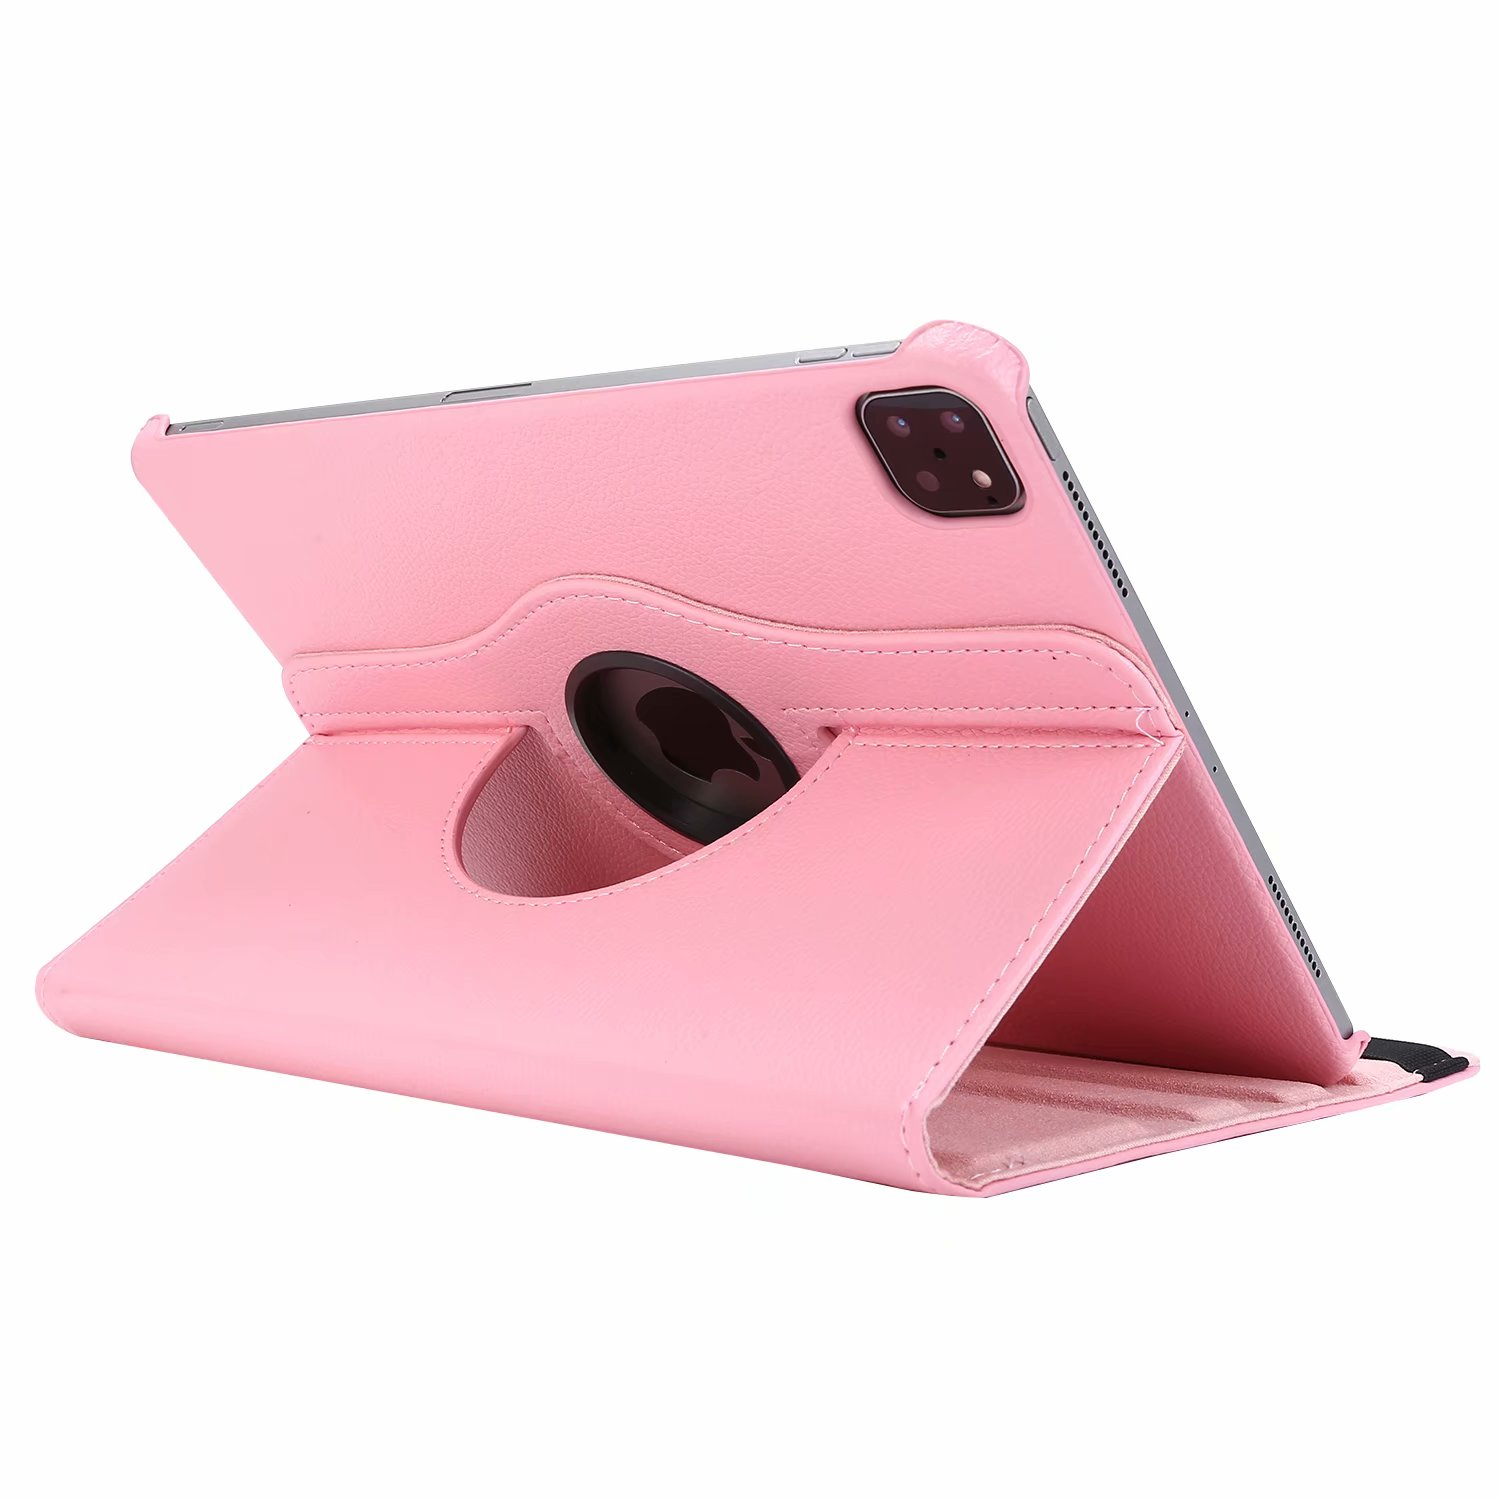 11 Degree A2068 360 Case A1934 A2013 A2230 2021/2020/2018 for A2228 iPad Pro Cover A1980